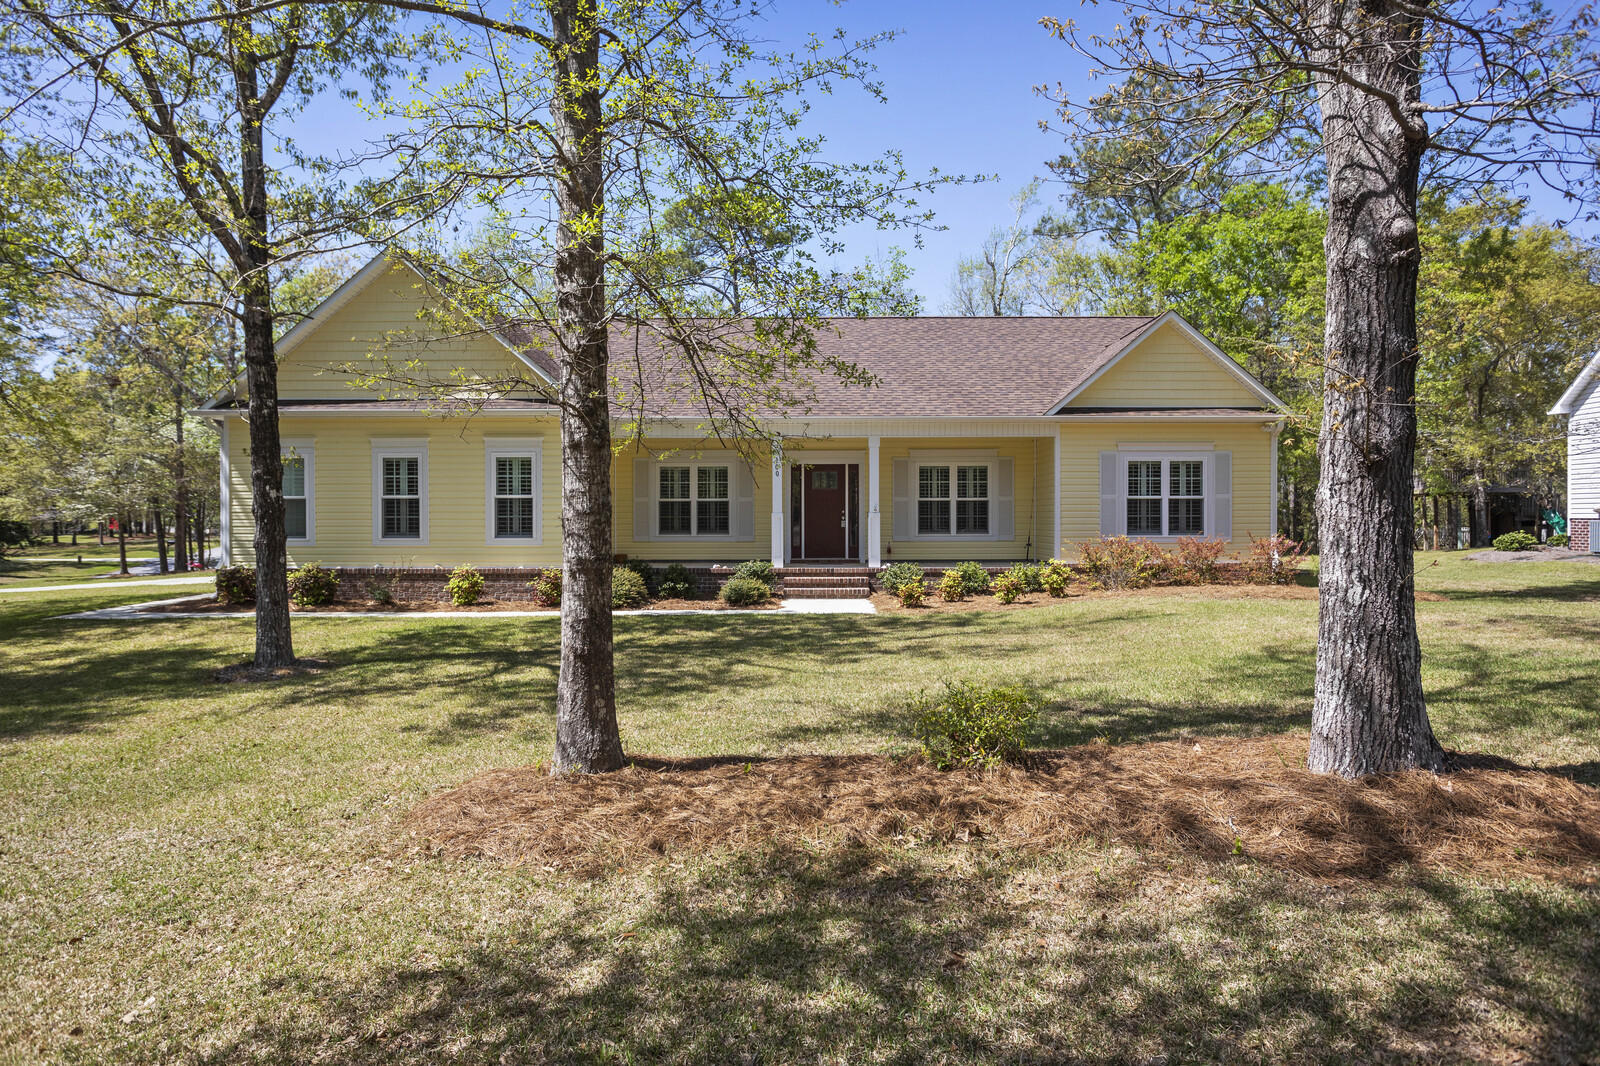 Welcome to Swans Bluff, a private community in Onslow county. This custom house is a beautiful three-bedroom home with an office, two-car garage, large cement driveway with boat parking.Deer are a very common sight in the community due to the proximity of Hammocks Beach State Park across the street from the house. The house comes with 1 of 10 boat slips ( slip #1) on the community dock. The dock puts you just minutes away from the Intracoastal waterway, great beaches, sandbars, and even restaurants & local watering holes in downtown Swansboro.   The backyard has a screened-in porch with a wood deck and a Michael Phelps MP Signature Deep swim spa beside the deck installed in September 2020. The deck and pool have a wooden privacy fence on one side and cattle-style fencing on the opposite side. Get ready to lounge by the fire pit and enjoy those beautiful Eastern North Carolina evenings.The home has a perfect blend of hardwood flooring in the common areas and carpet in the bedrooms and office for that warm touch. The kitchen boasts marble countertops double sinks and all stainless-steel appliances ready to make any meal preparation a snappy delight. Bathrooms have tiled floors and the master bedroom has a tiled shower with two shower heads which one happens to be a rainfall shower! Enjoy those casual days by the gas fireplace and curl up with a favorite book or enjoy your favorite shows with your tv above the fireplace. There is no shortage of places to lounge or entertain in this home with a large front patio, a screened-in porch, and a wooden deck. This house is the one for you! Don't hesitate, schedule a showing today!